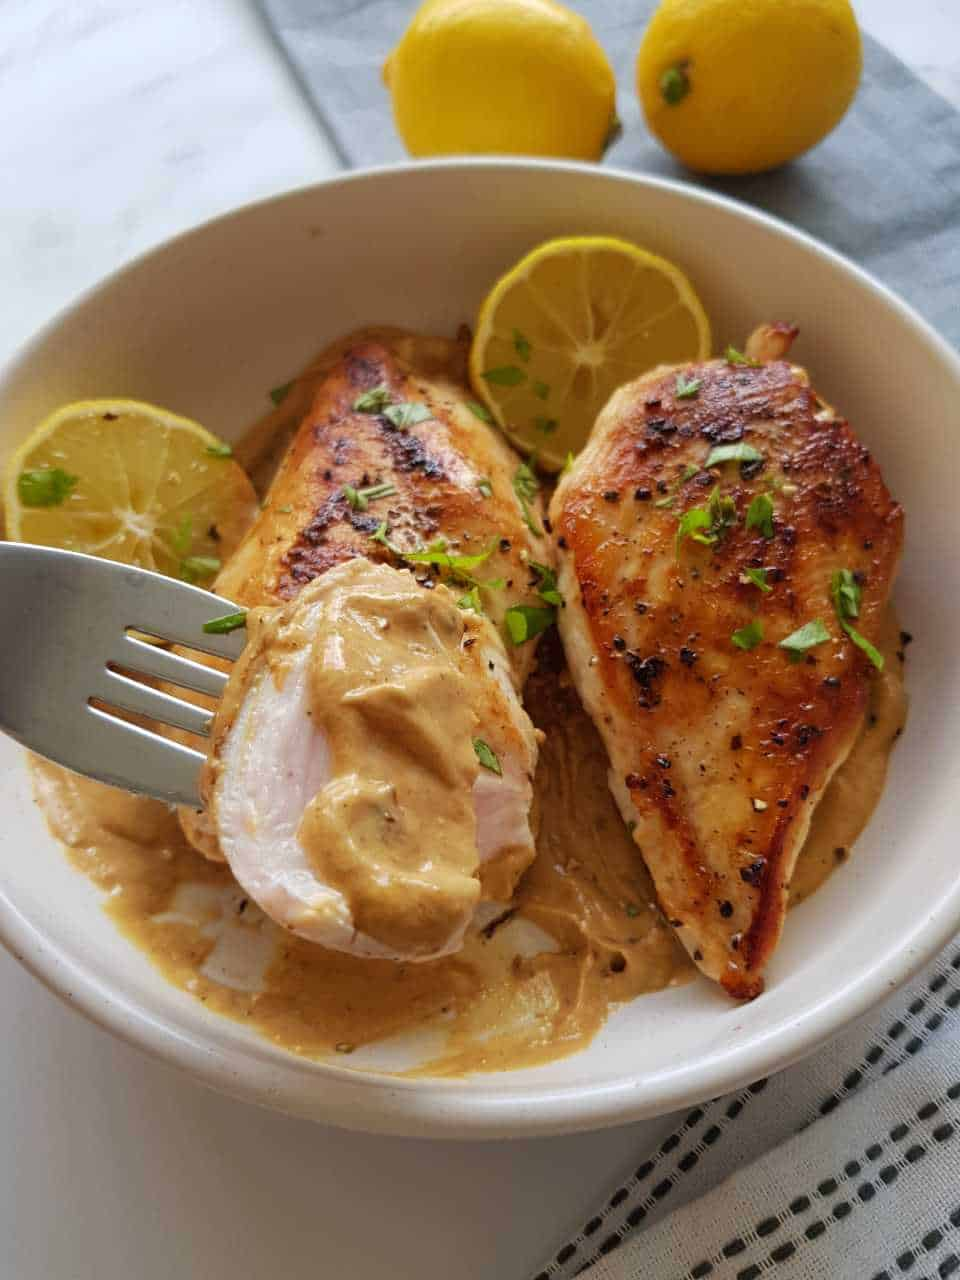 Lemon pepper chicken breasts in a white bowl with lemons in the background.